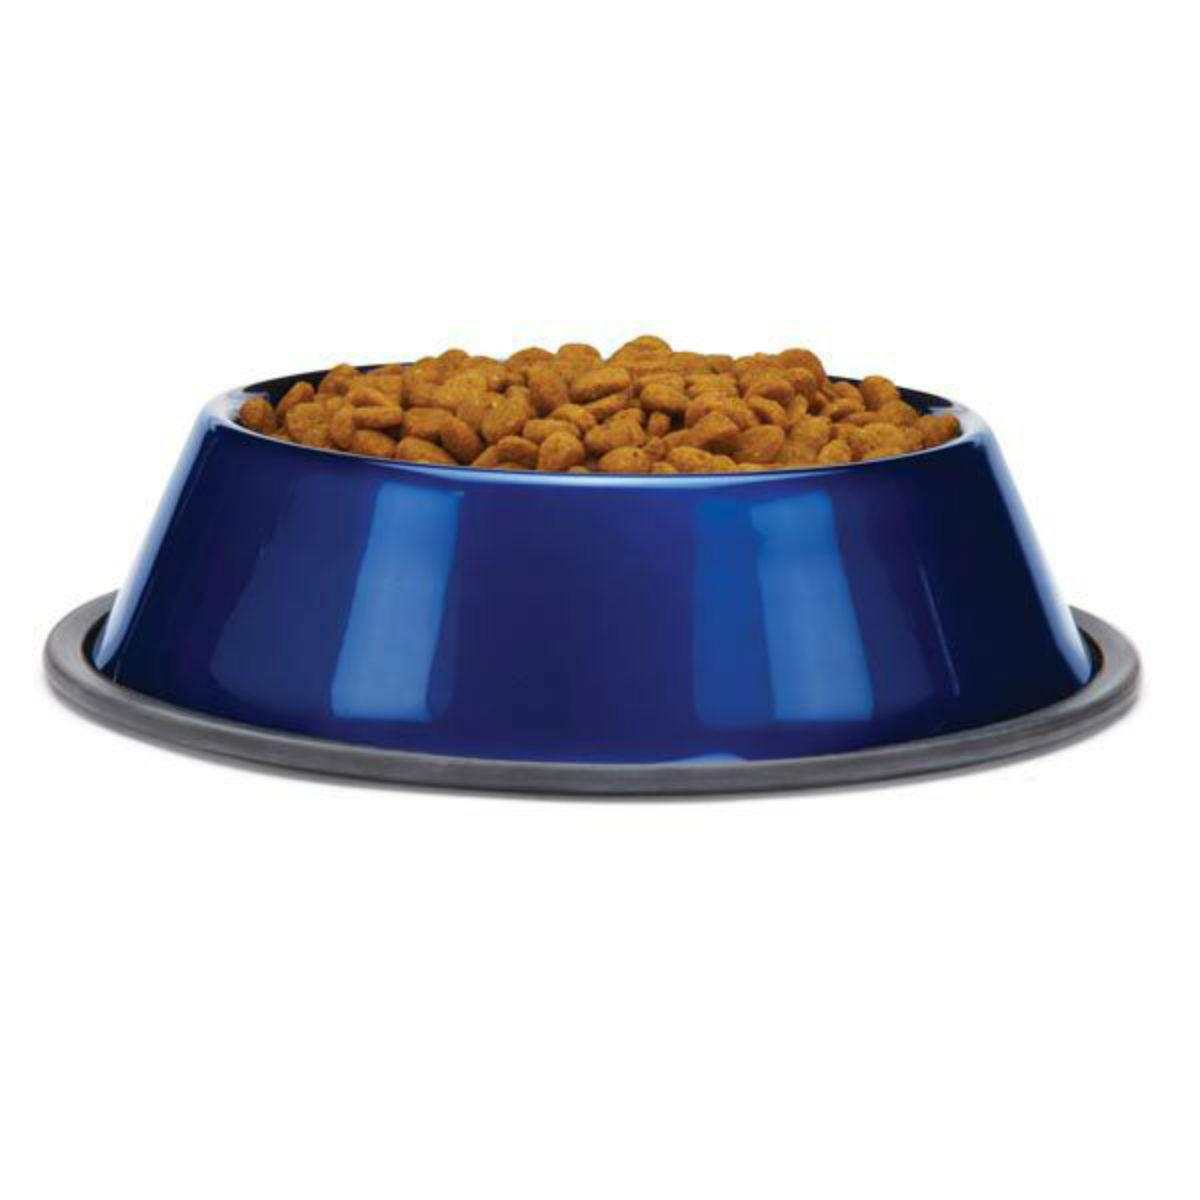 ProSelect DuraGloss Metallic Stainless Steel Dog Bowl - Sapphire